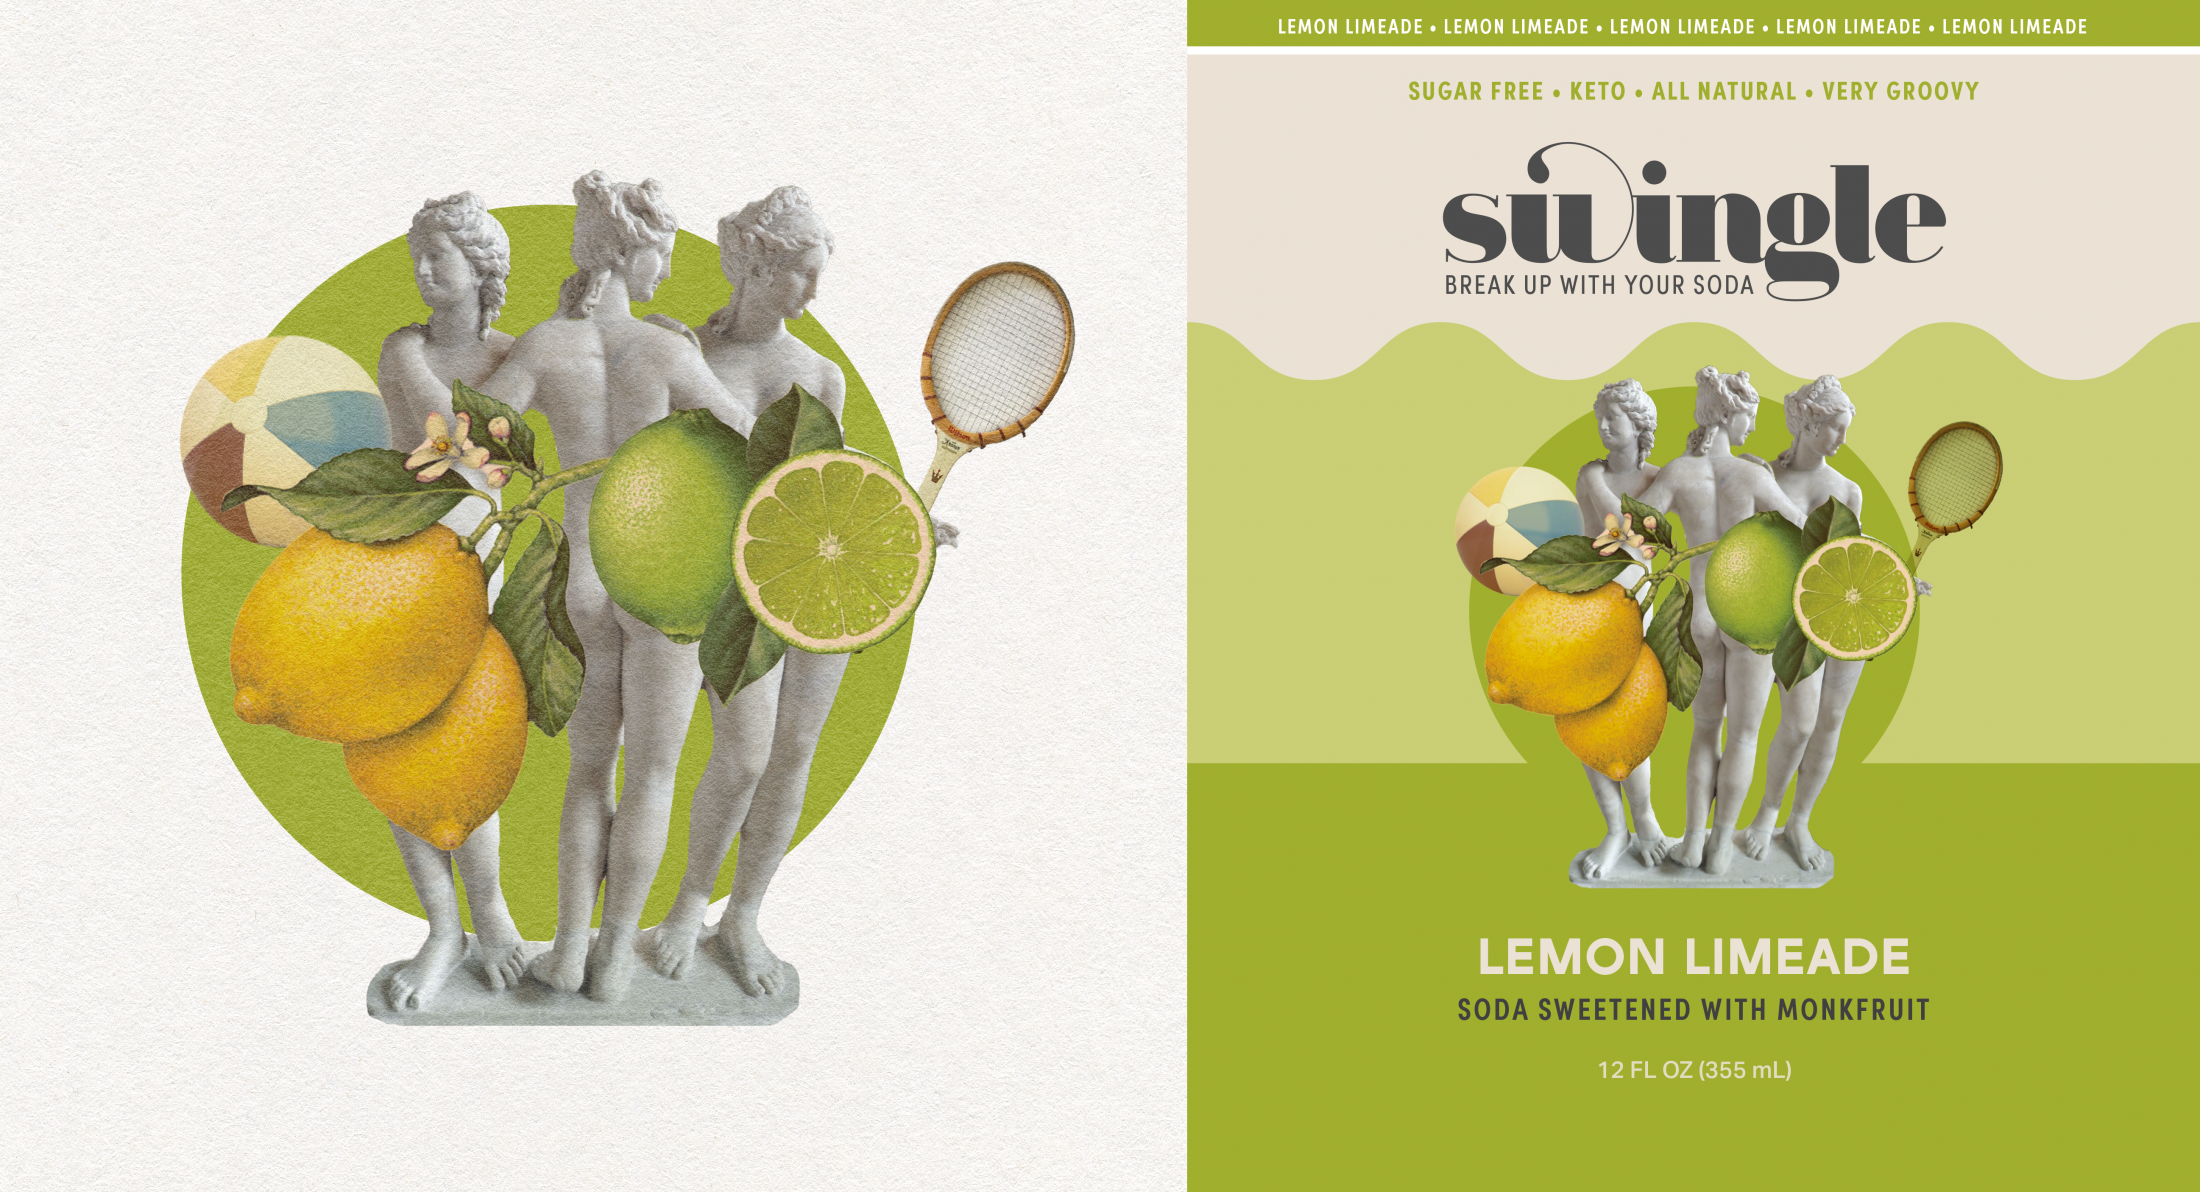 Label Art: A collage of statue ladies censored by lemons and limes, holding tennis rackets over a green circle.